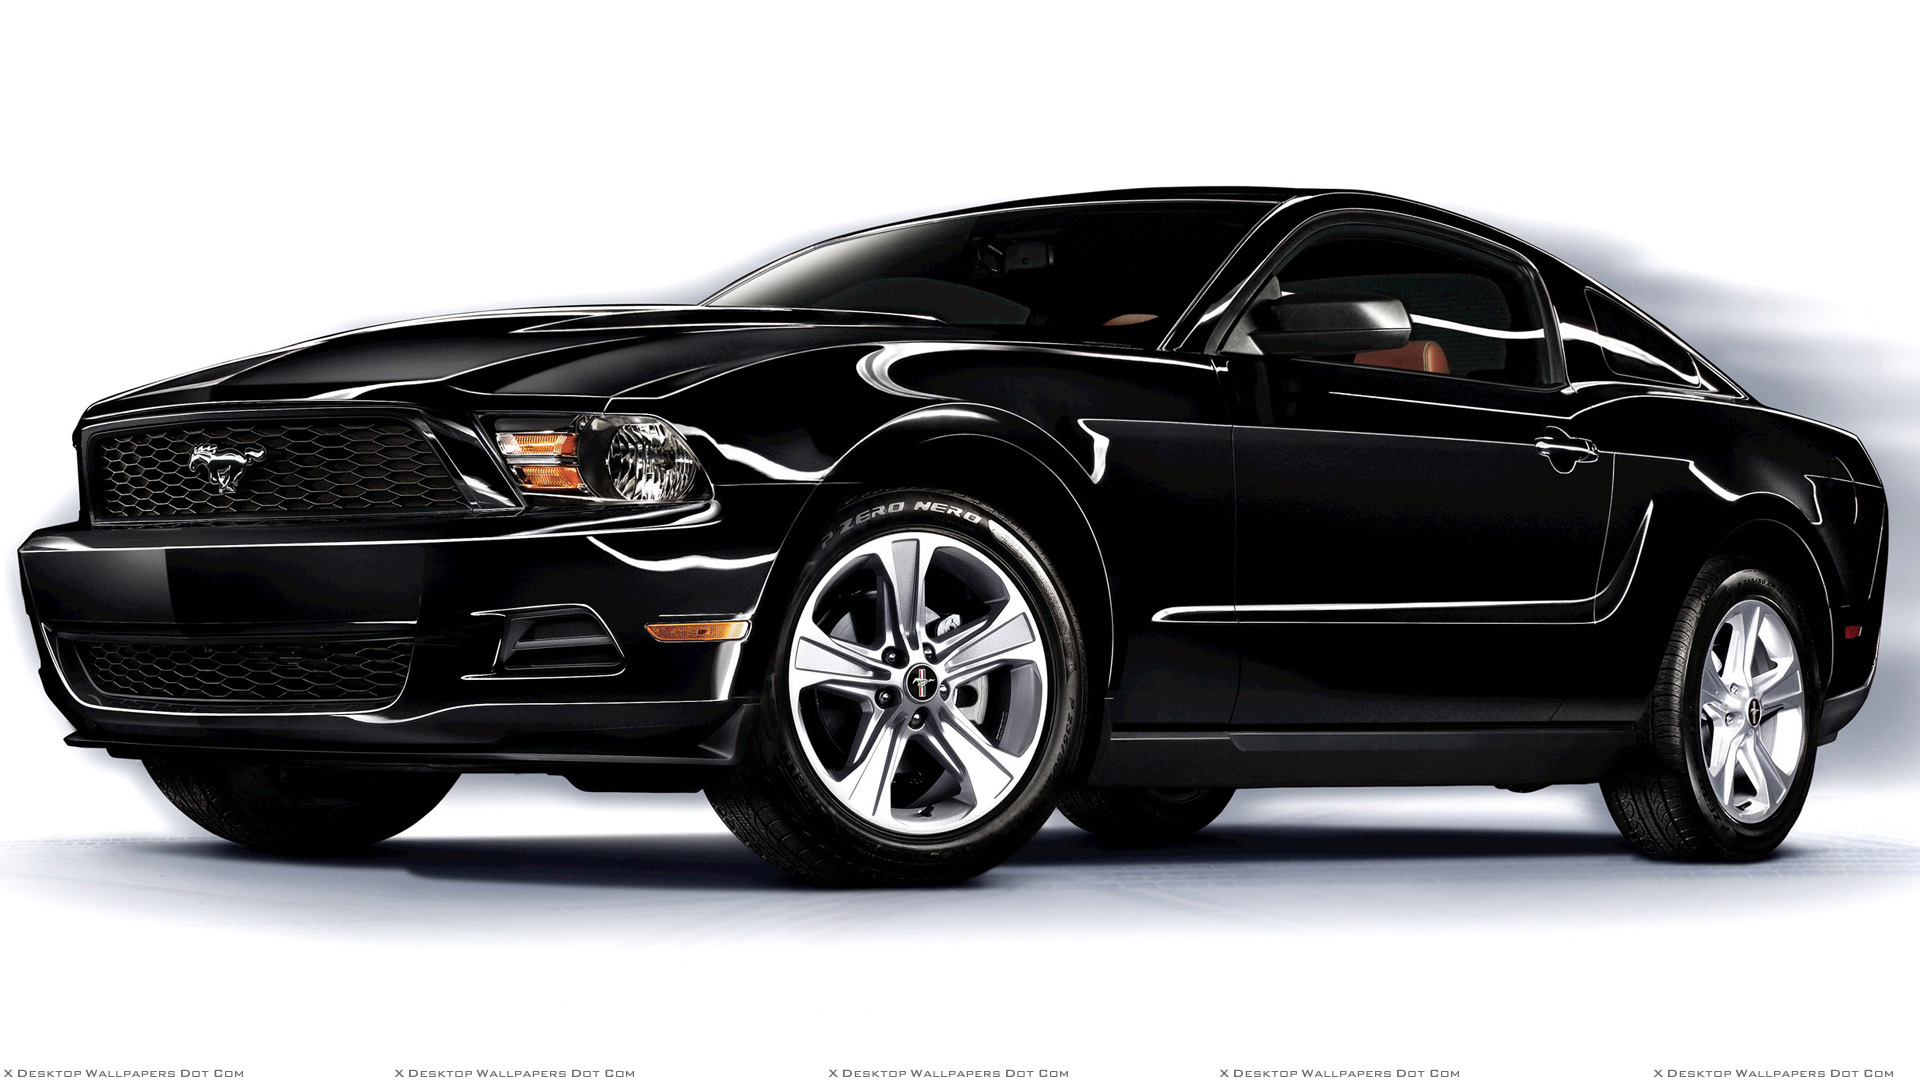 2011 Ford Mustang V6 Front Side Pose in Black Wallpaper 1920x1080